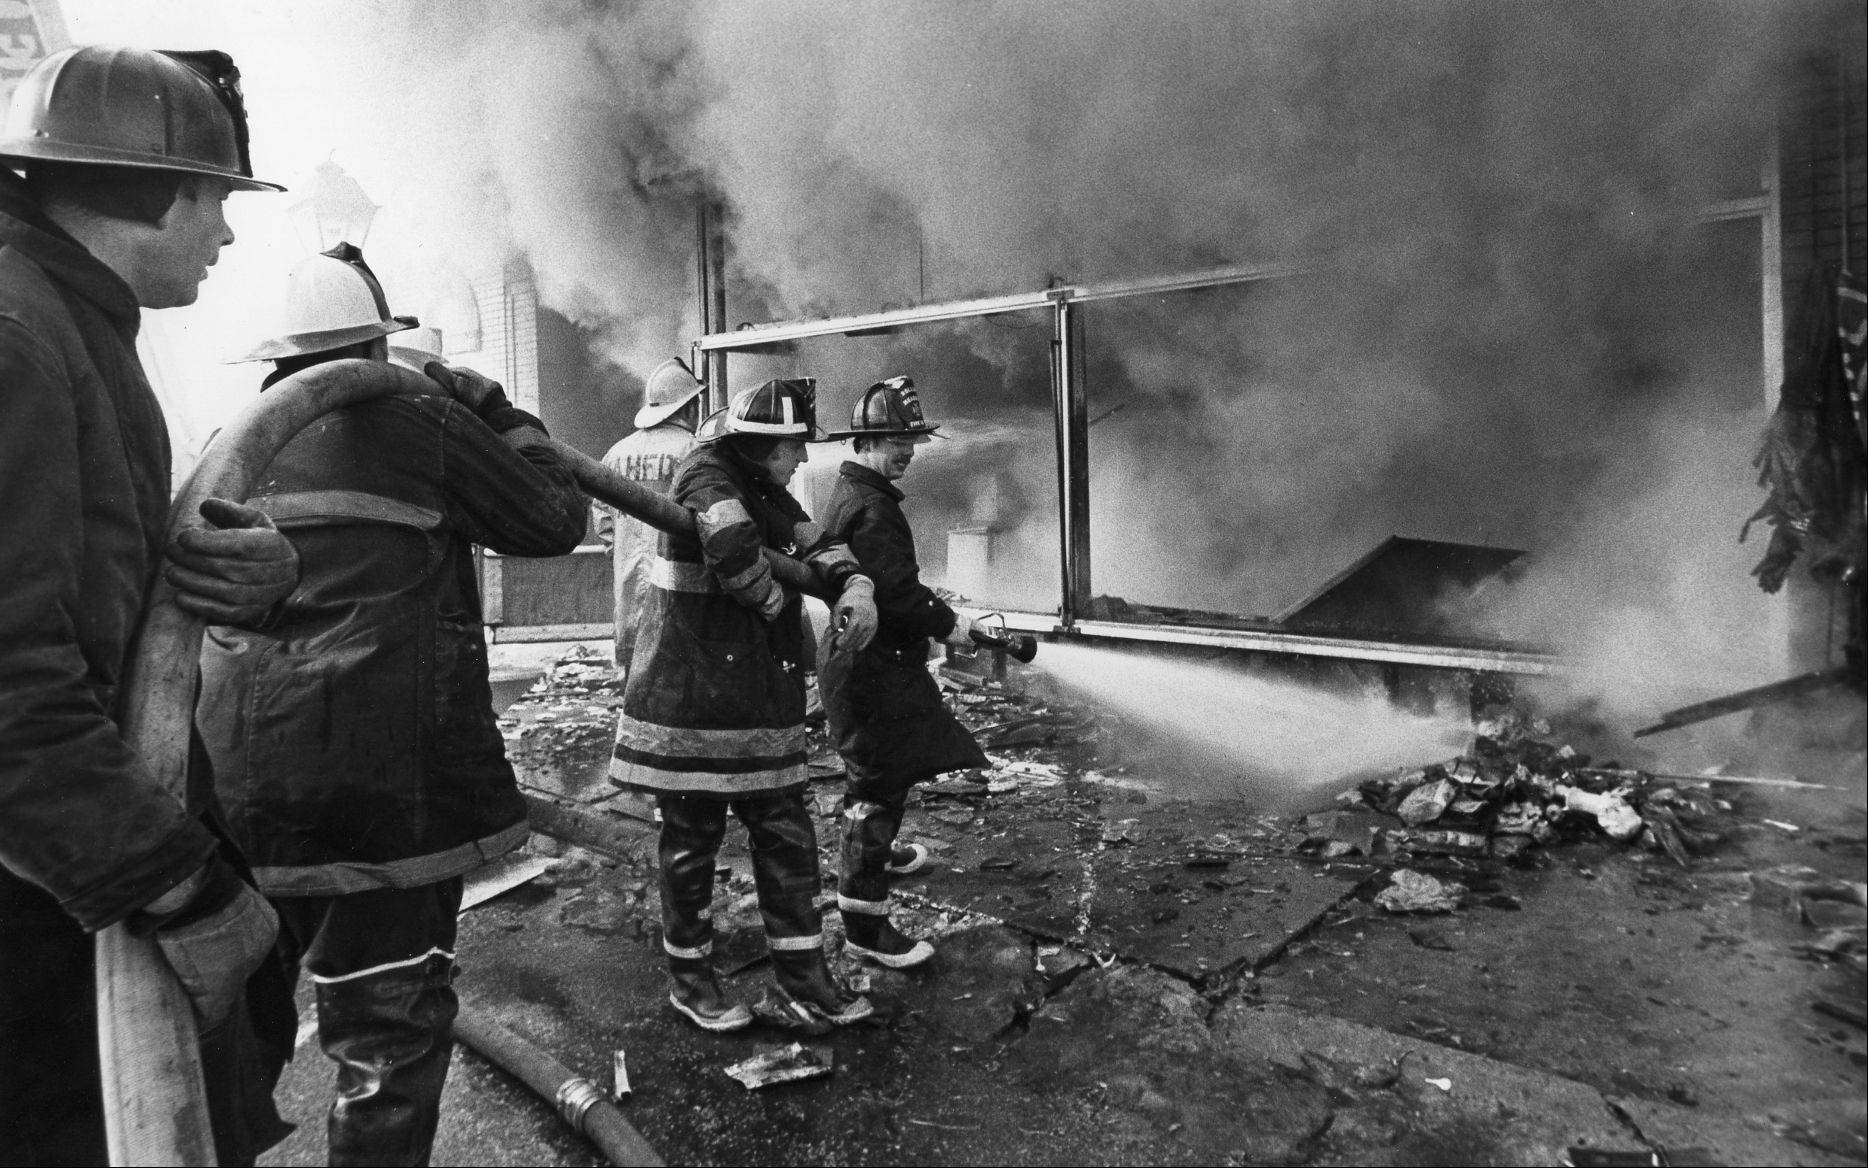 Palatine firefighters work at the Feb. 23, 1973 scene of the Ben Franklin store fire that killed three volunteer firefighters.